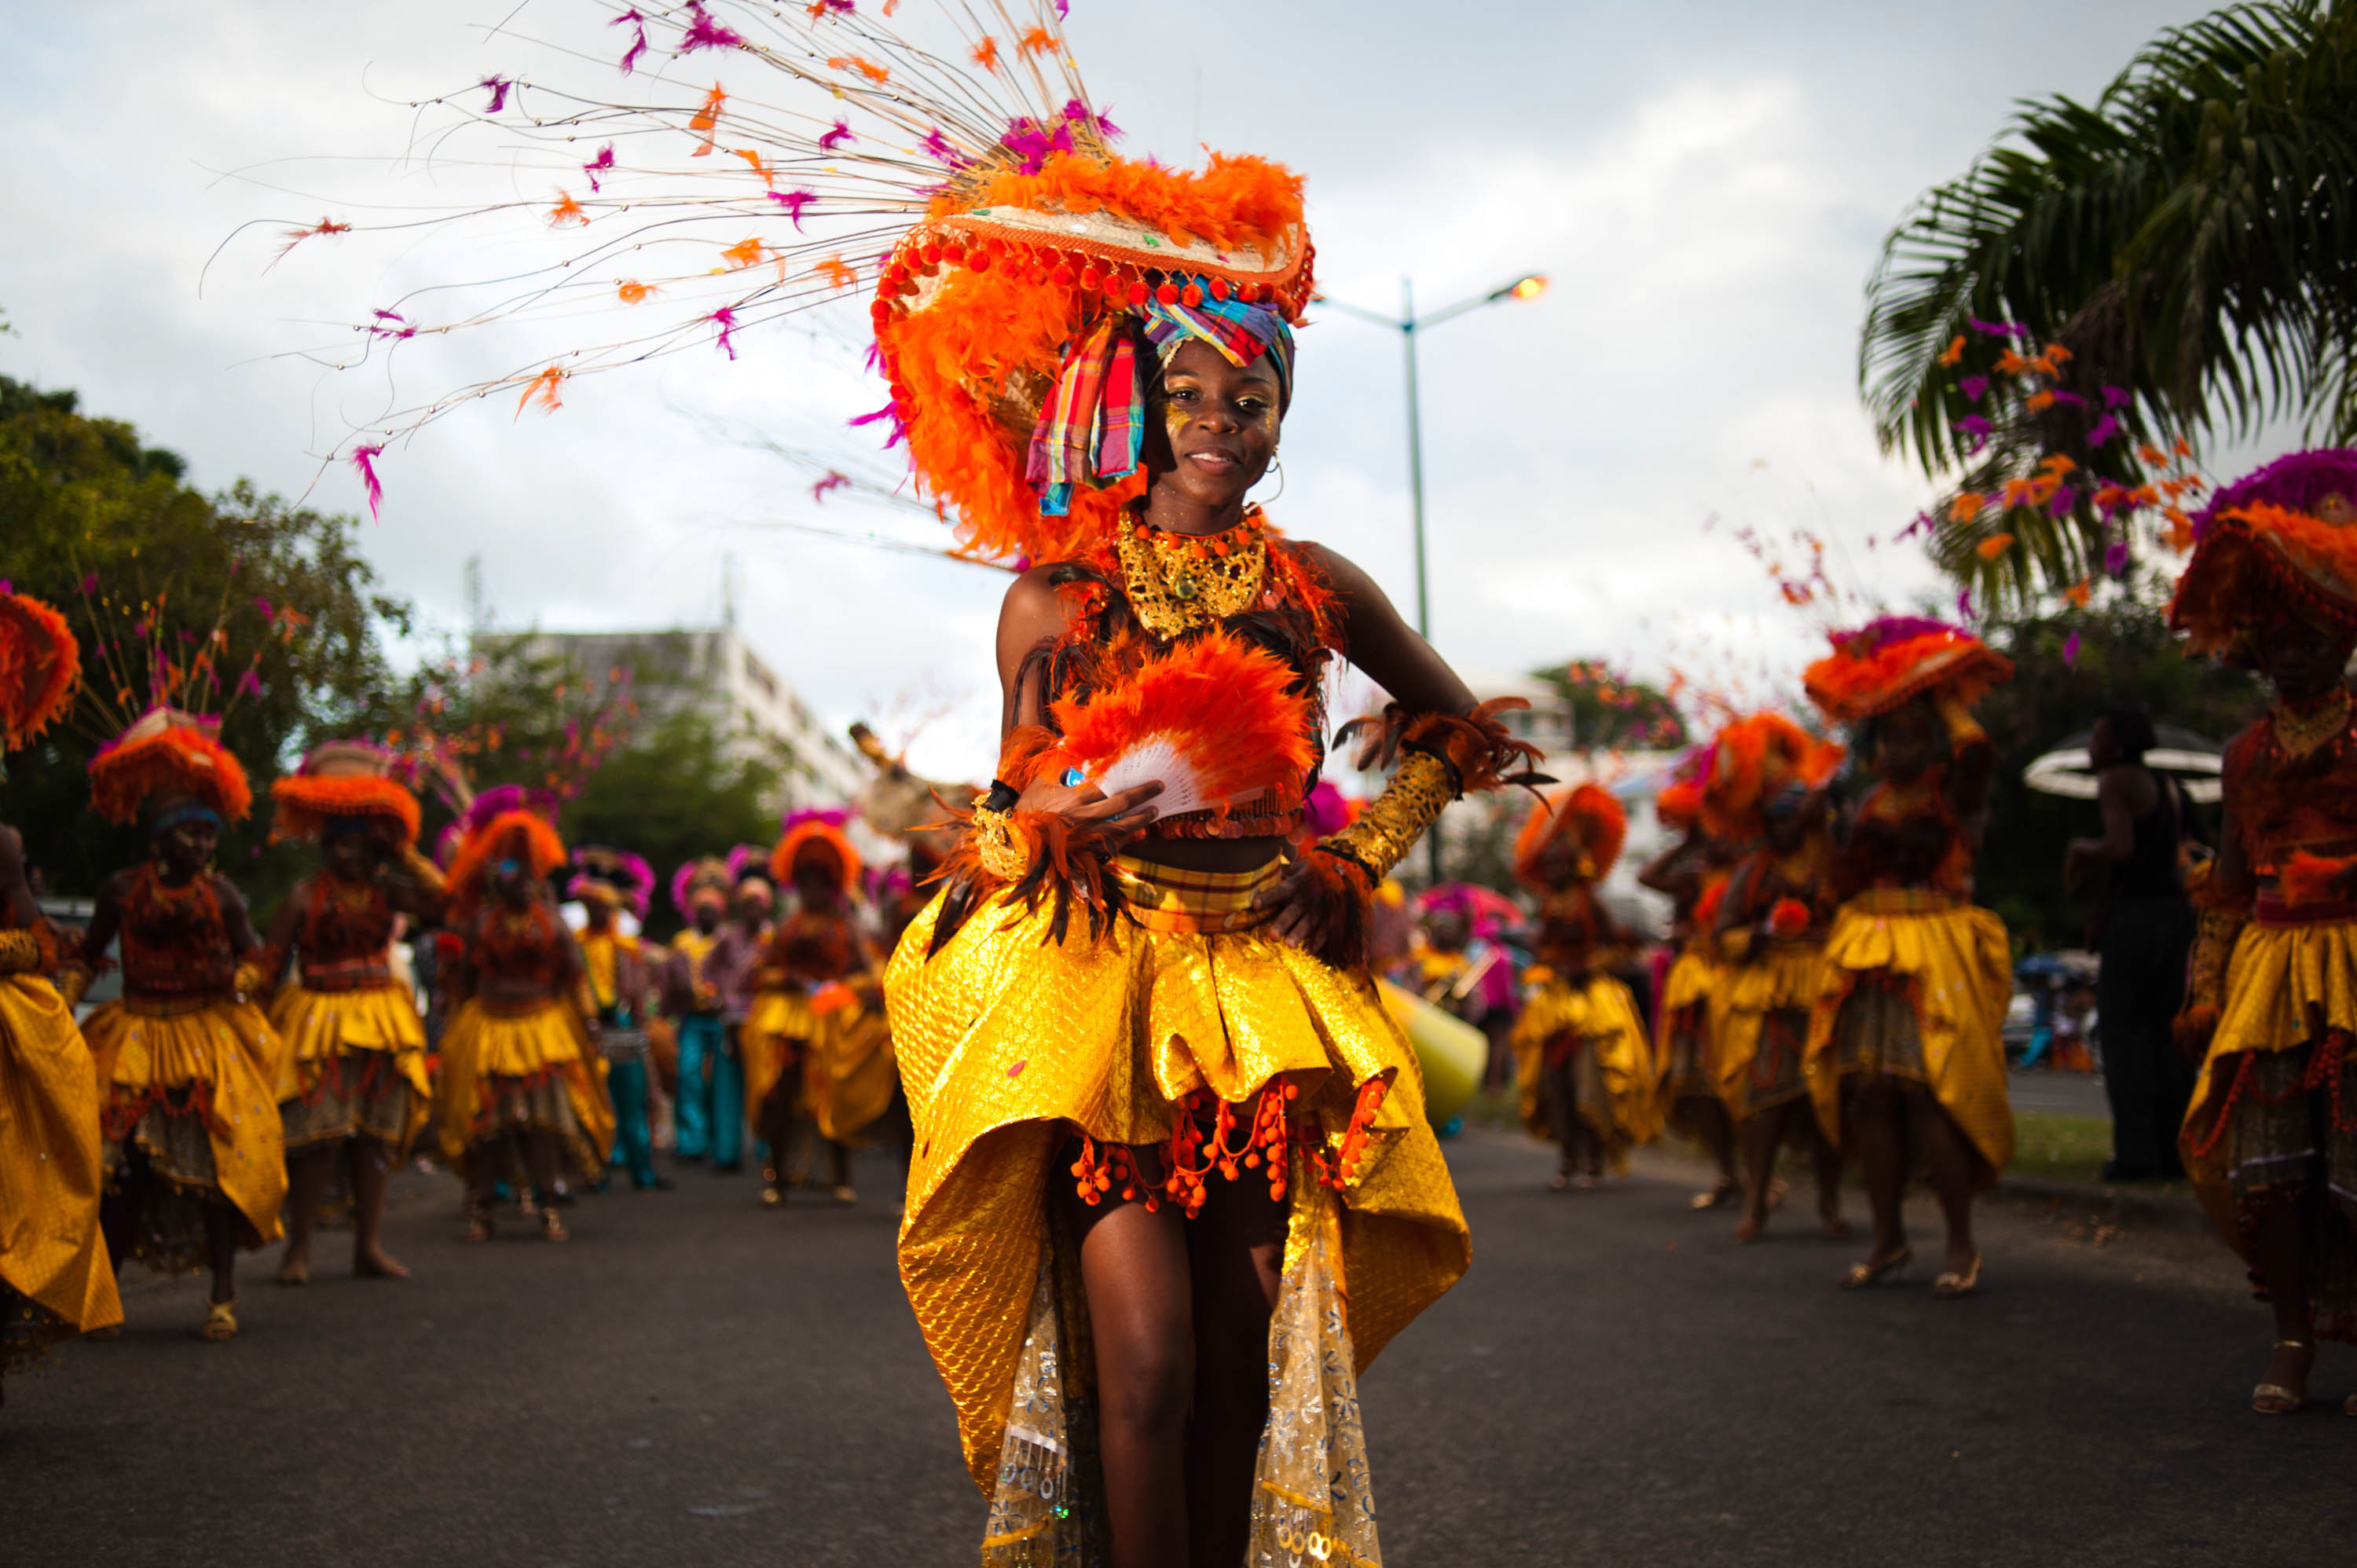 File:Guadeloupe winter carnival, PointeàPitre parade. A young woman